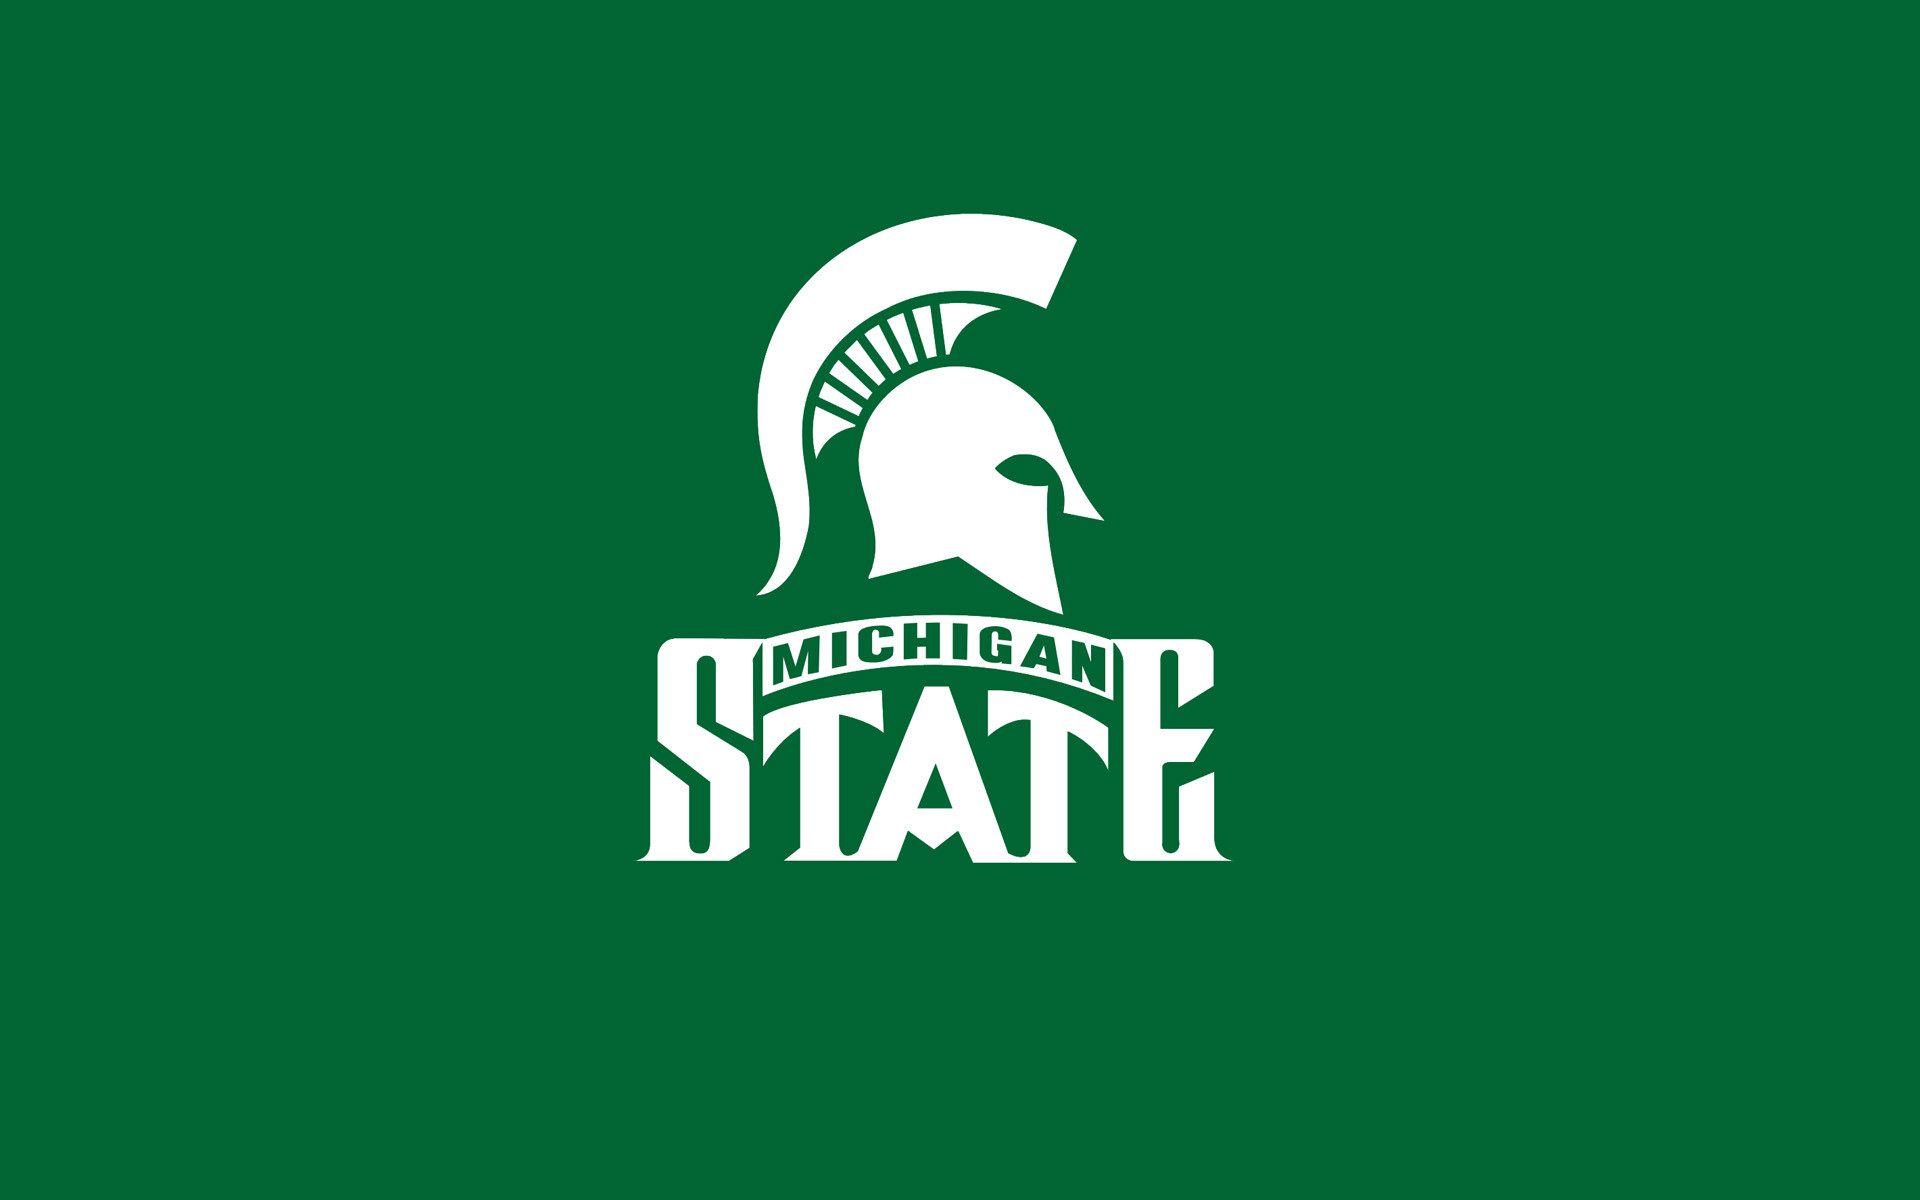 1920x1200 Michigan State Wallpaper